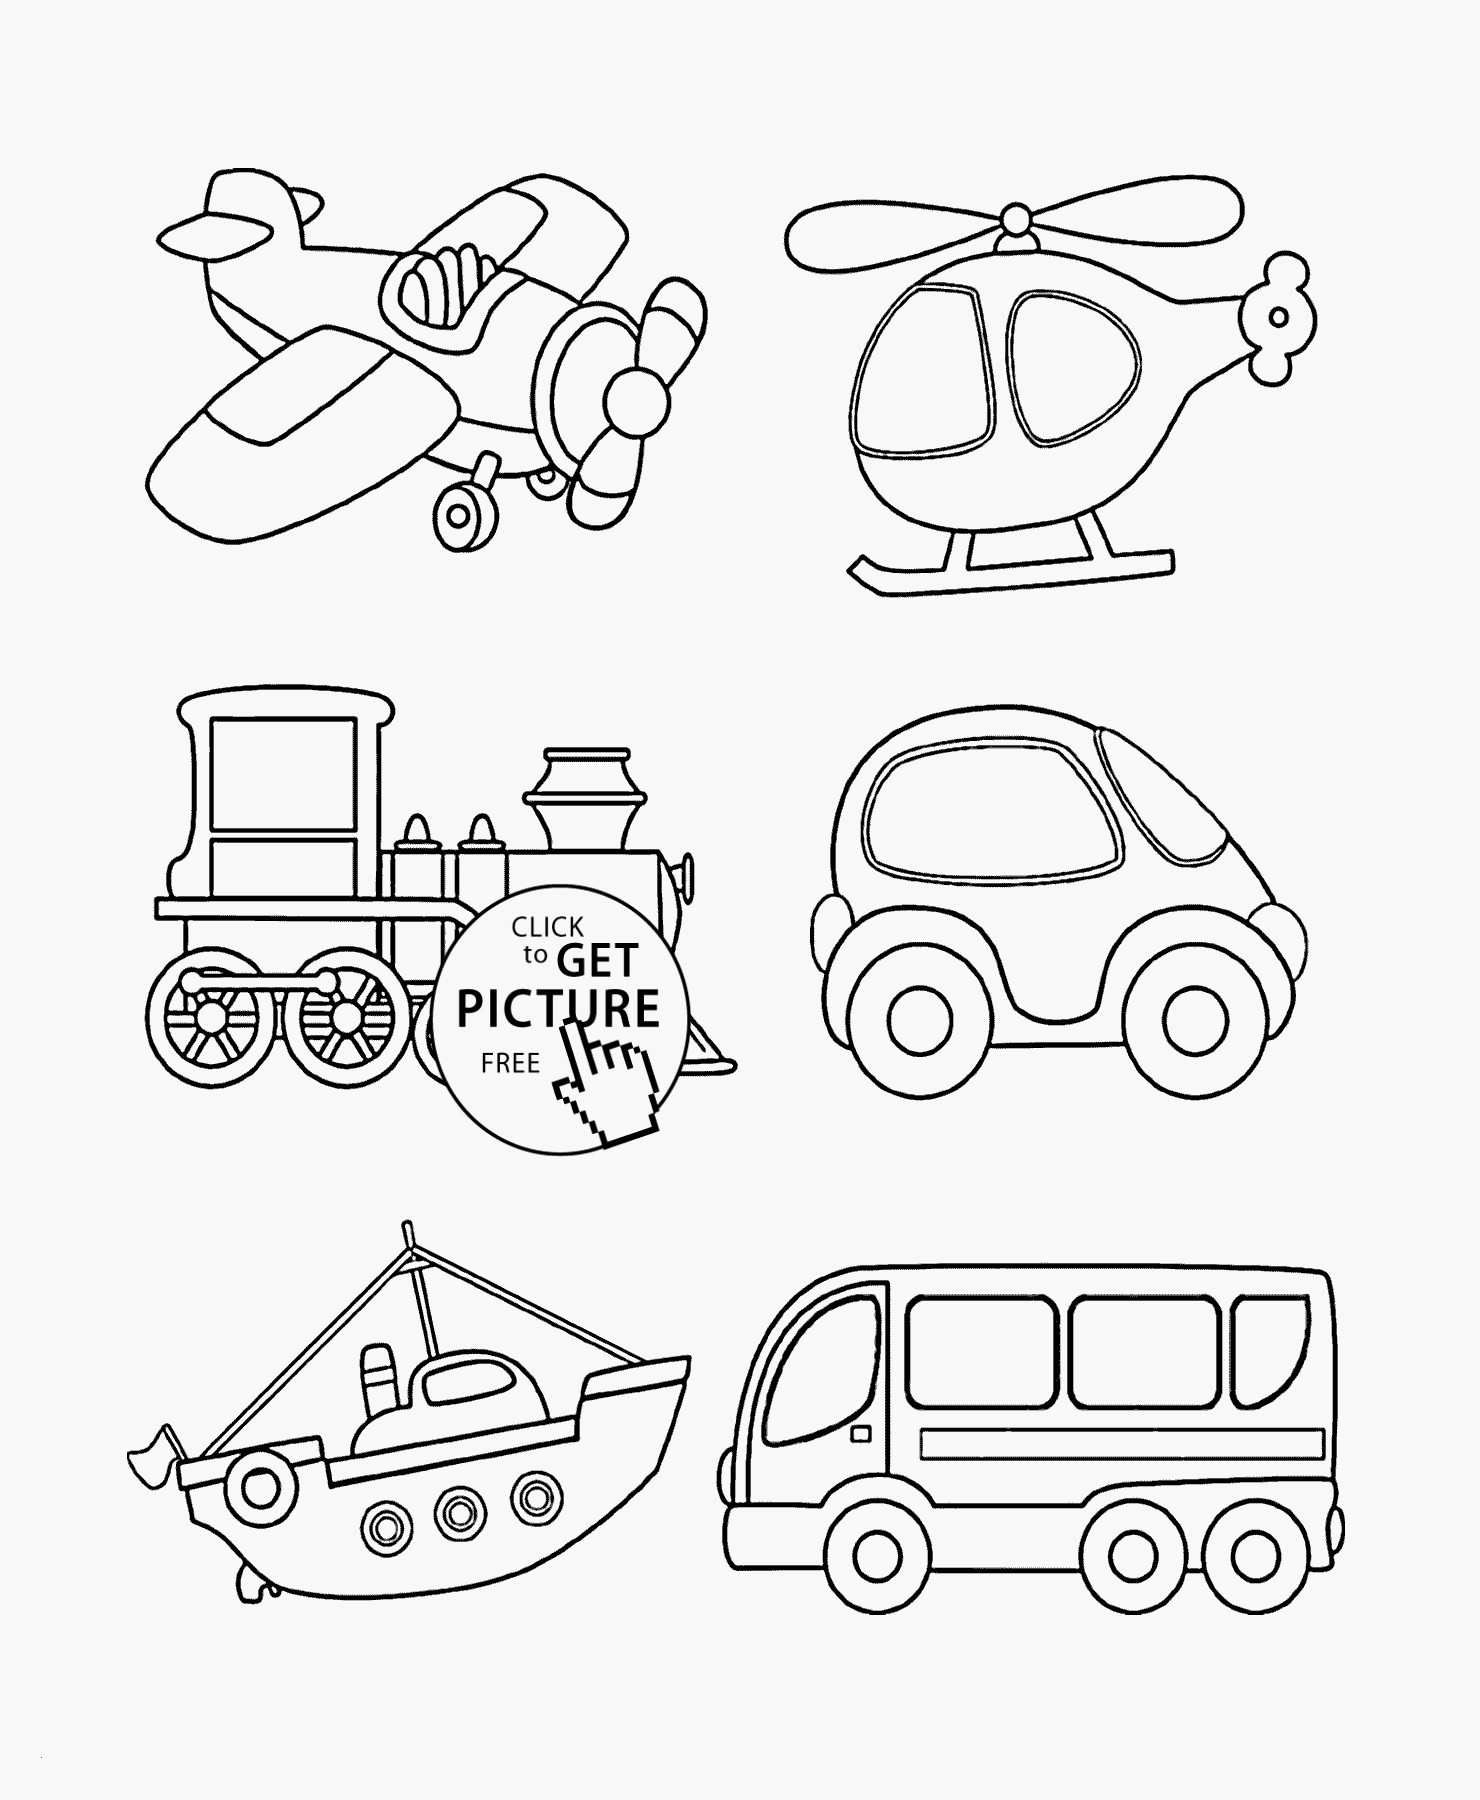 tayo coloring pages - photo#33